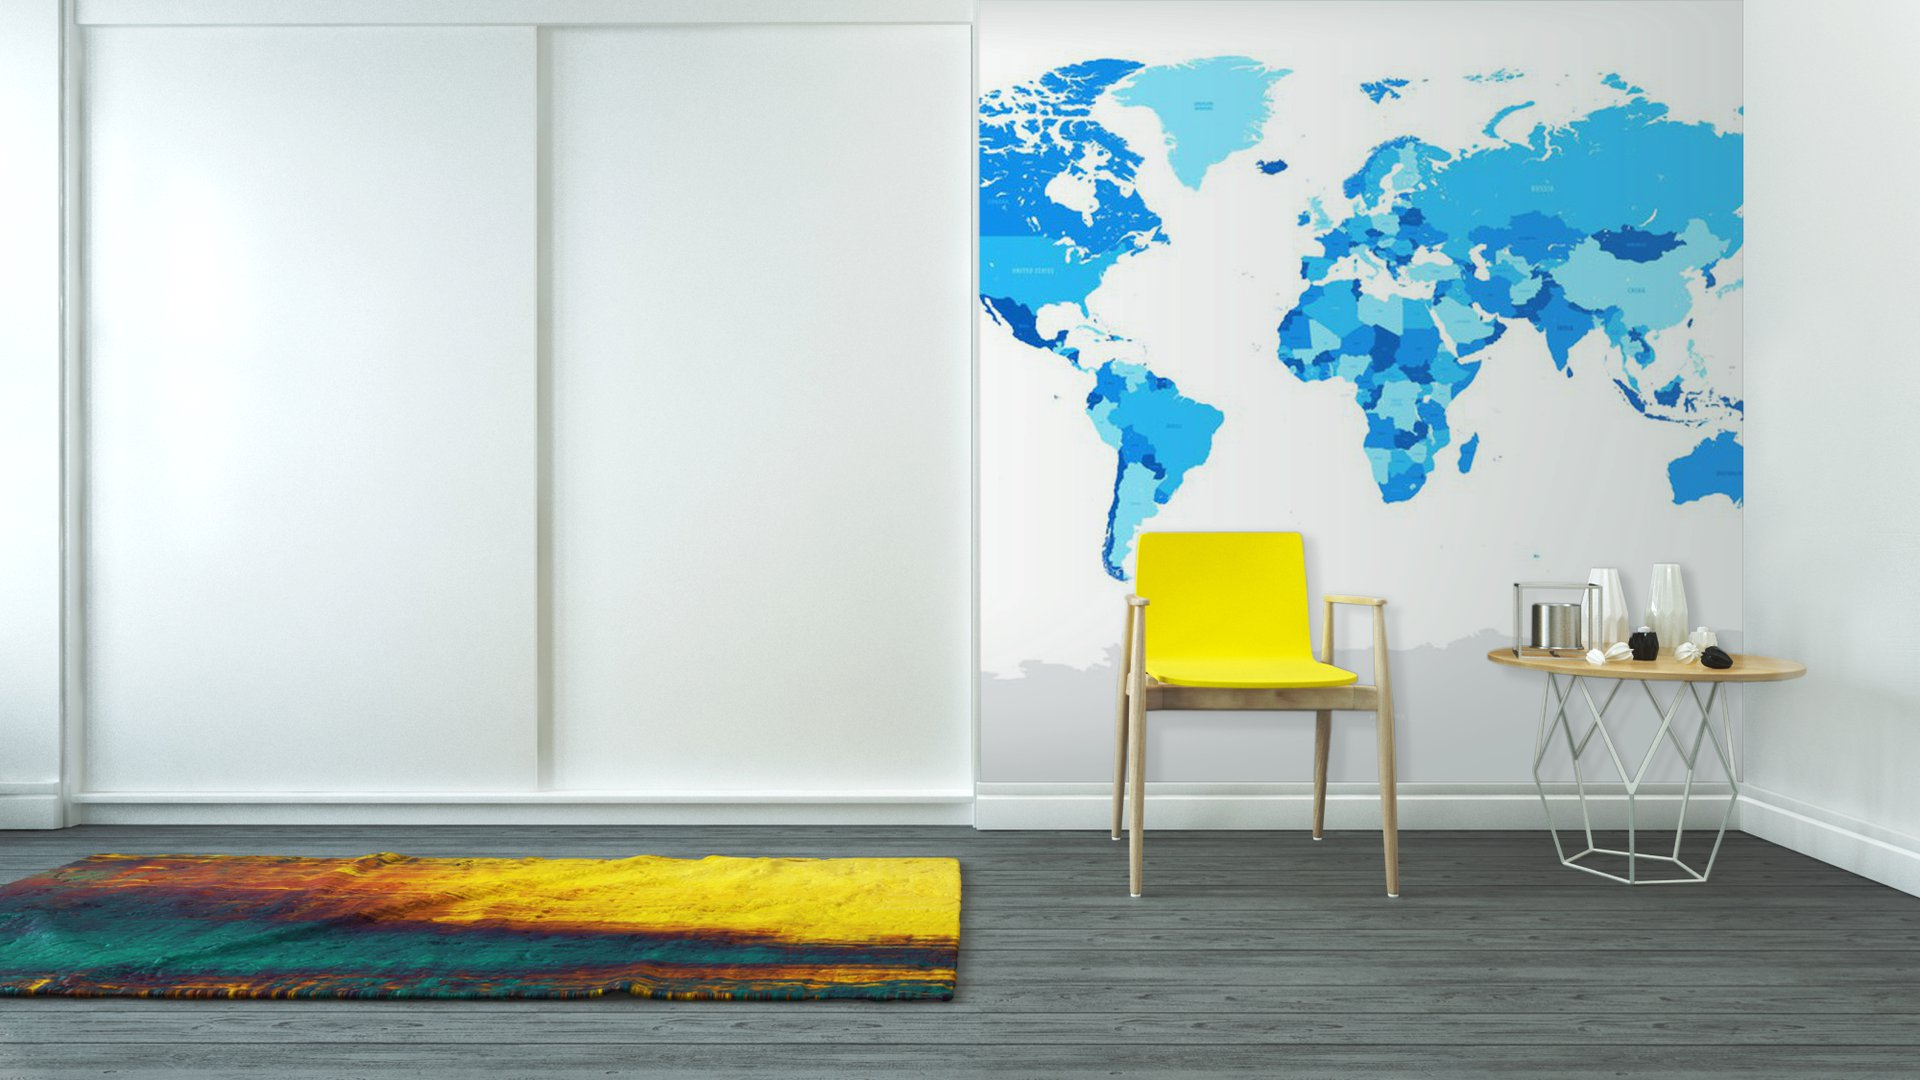 Vinyl wall mural hi detail blue vector political world map for Mural vector